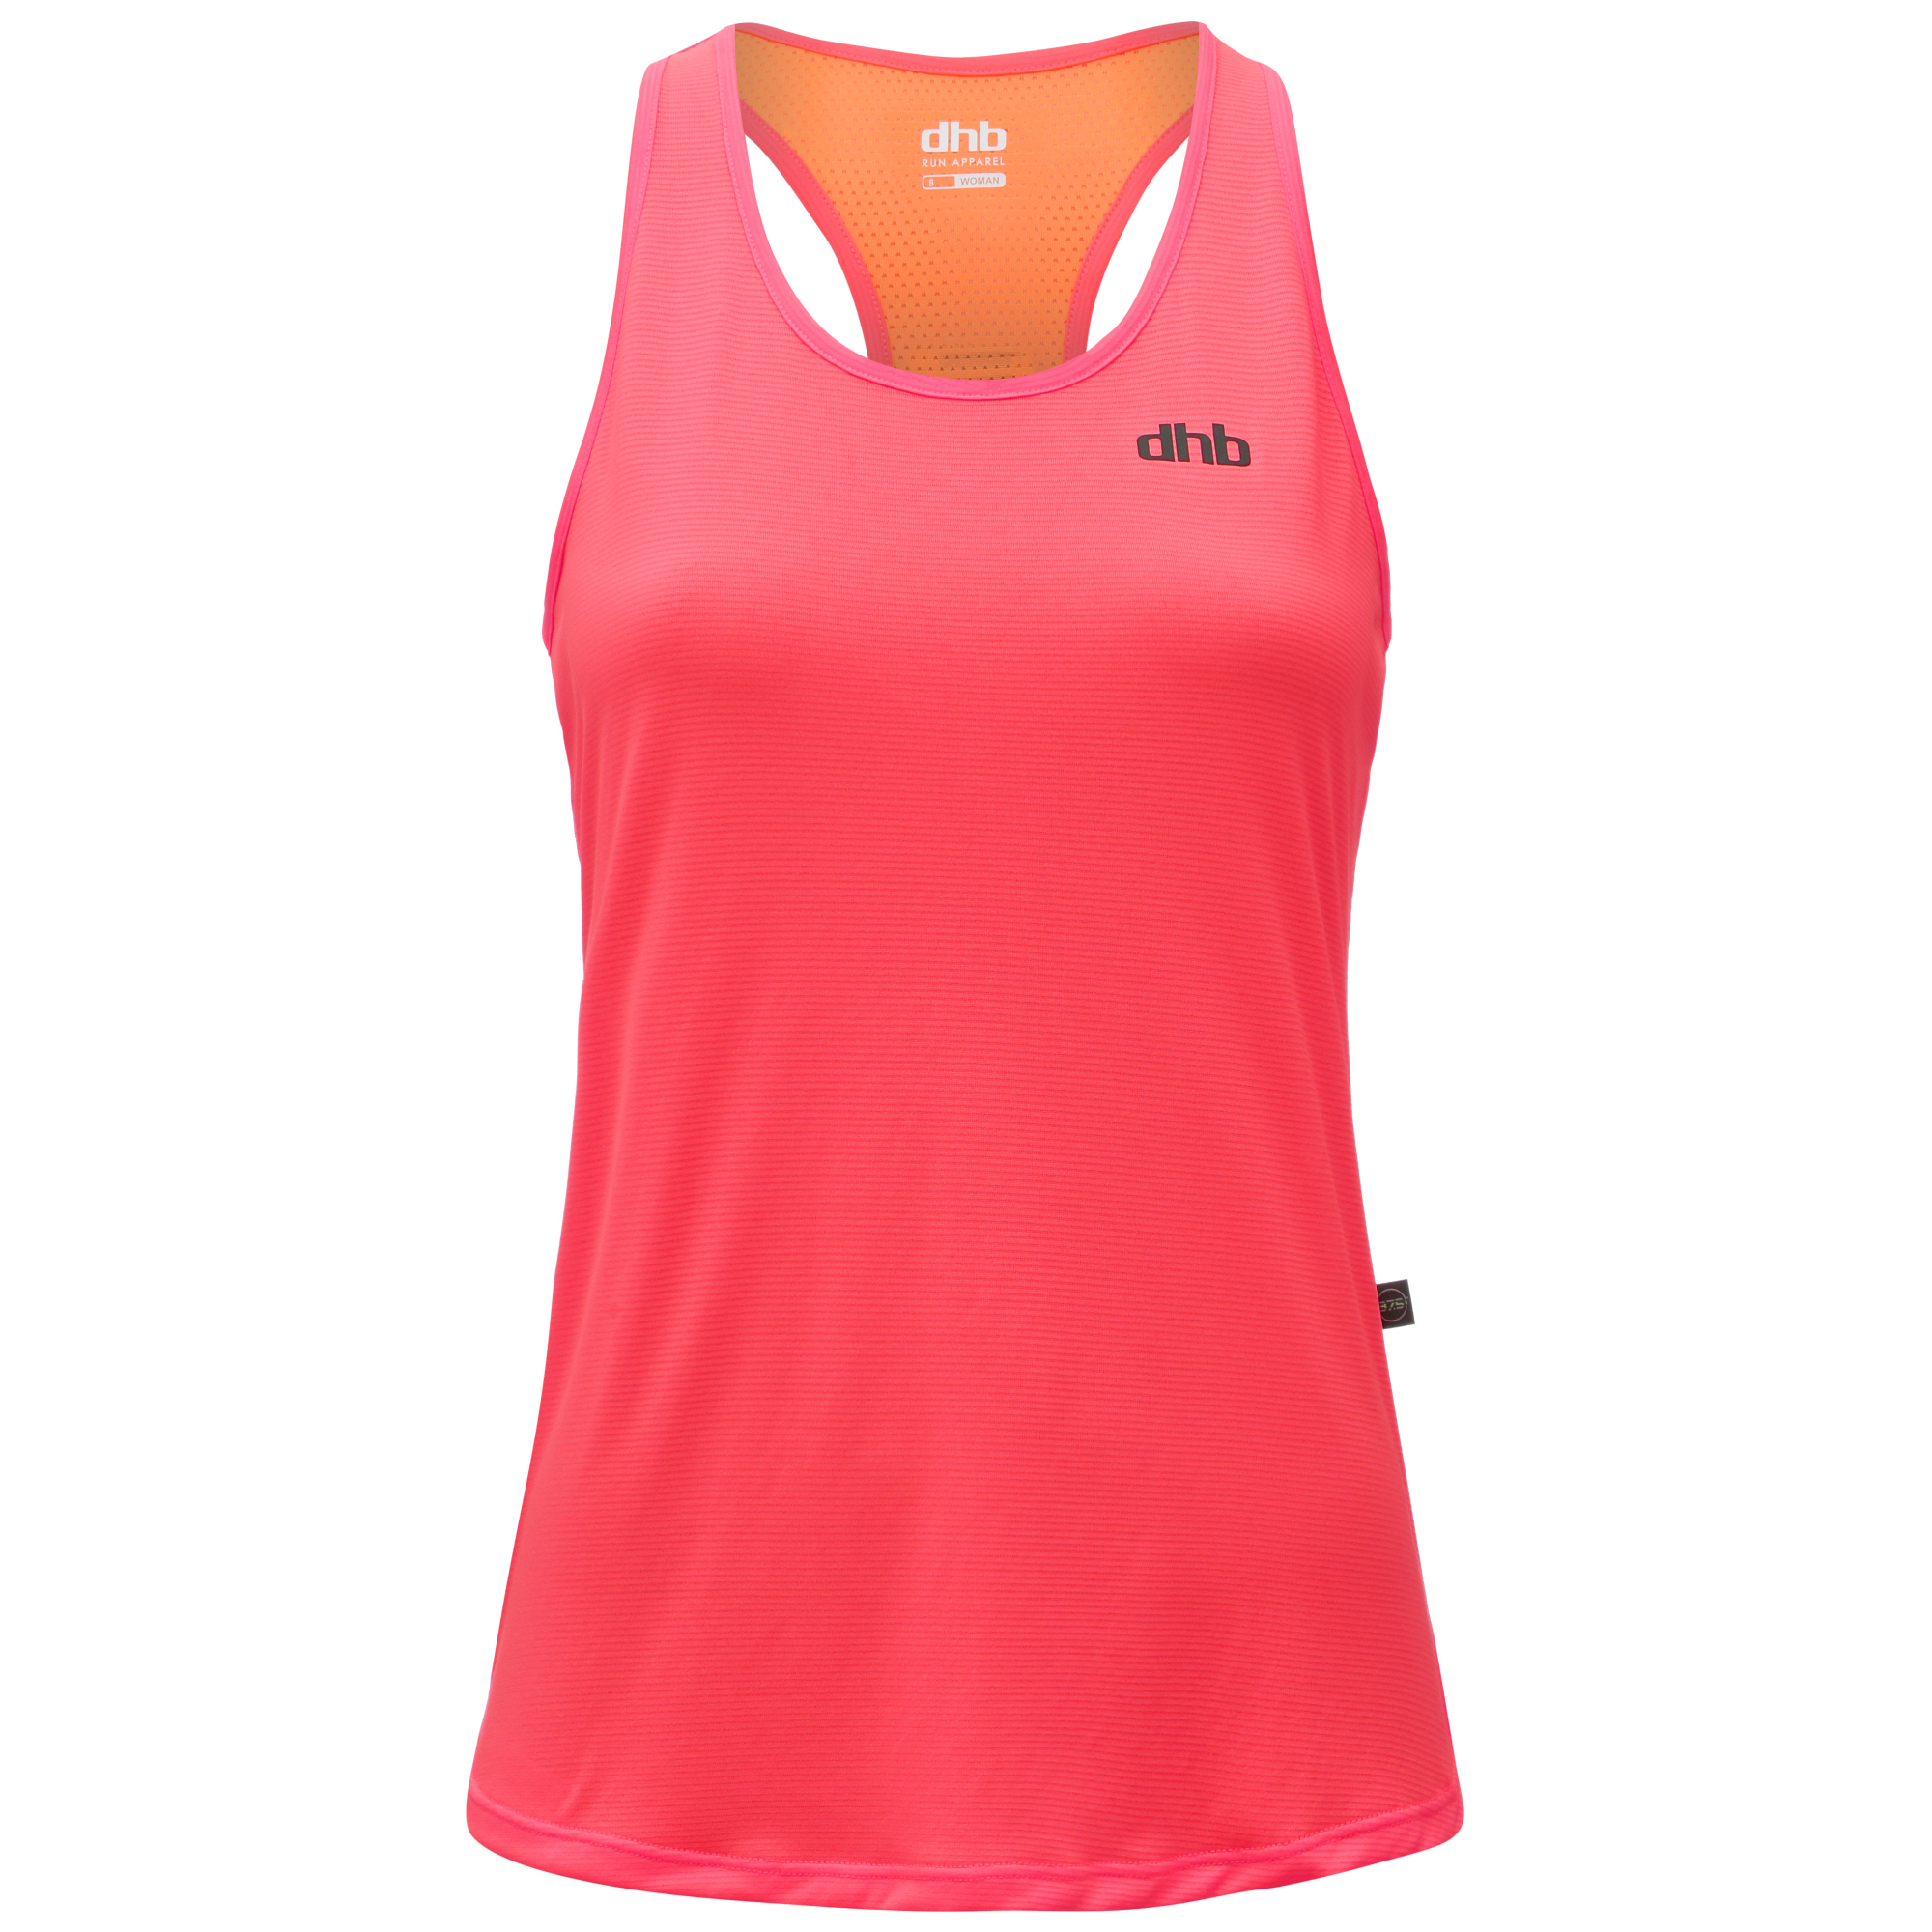 dhb Women's Run Singlet | Vests